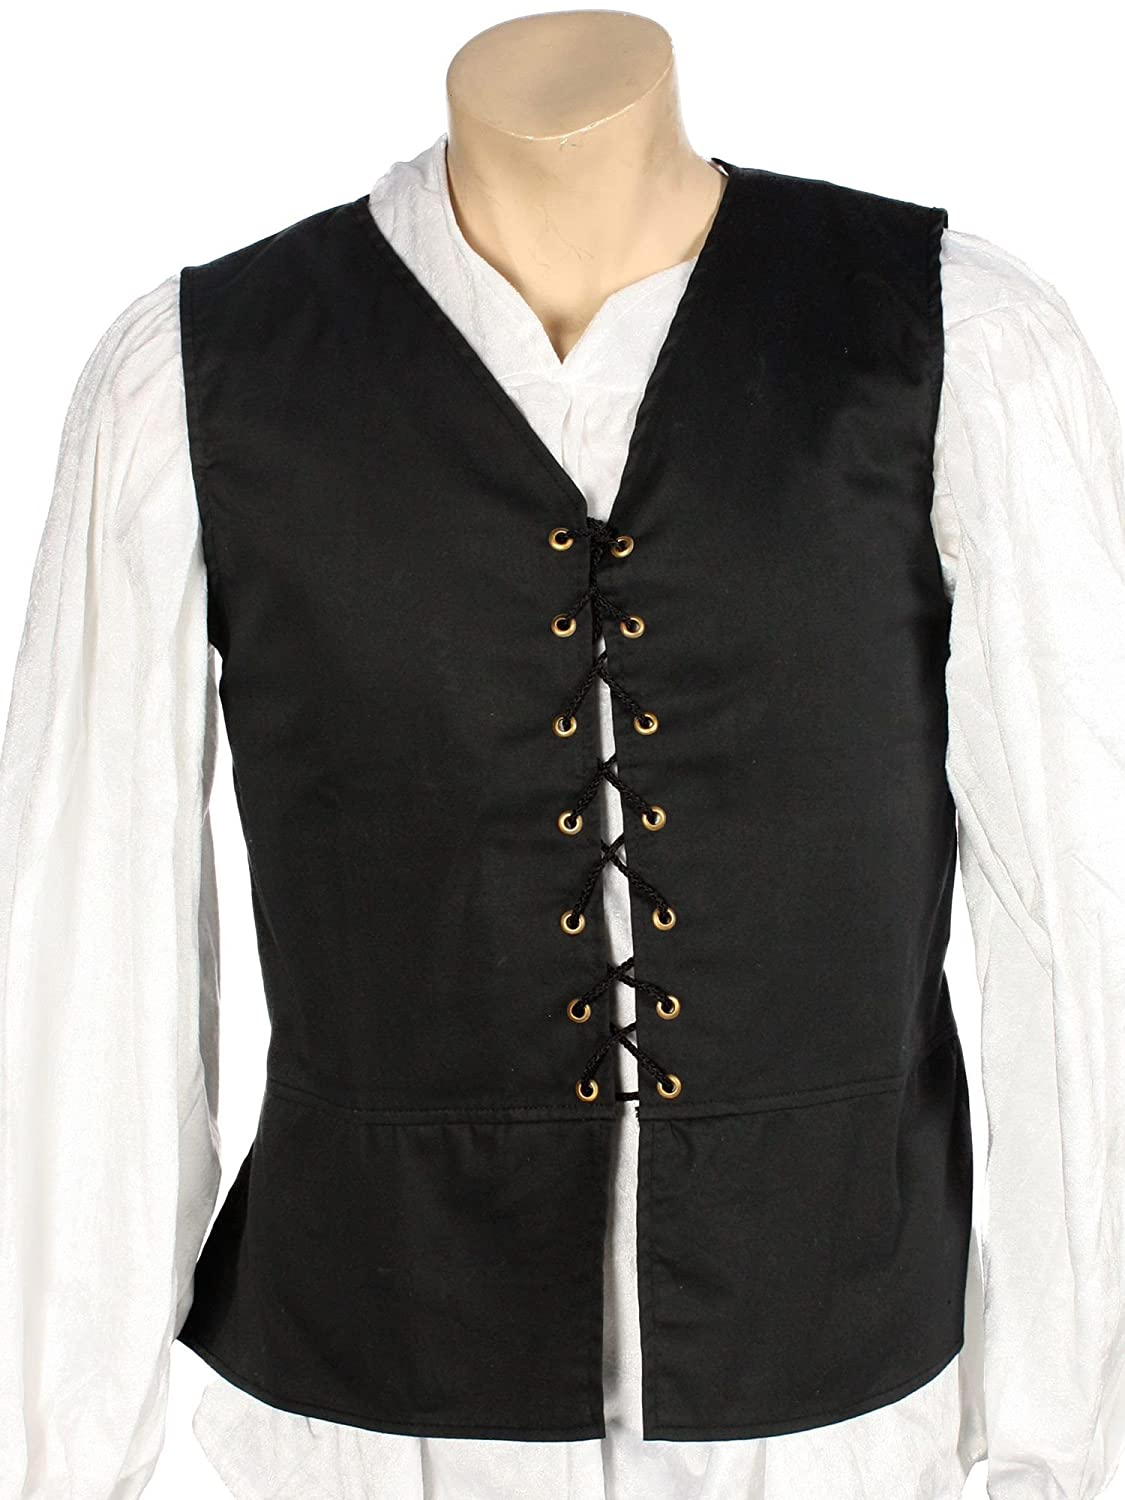 Menu0027s Medieval Renaissance Black Cotton Blend Vest - DeluxeAdultCostumes.com  sc 1 st  Deluxe Theatrical Quality Adult Costumes & Menu0027s Medieval-Renaissance Tunics Shirts Gambesons and Vests ...